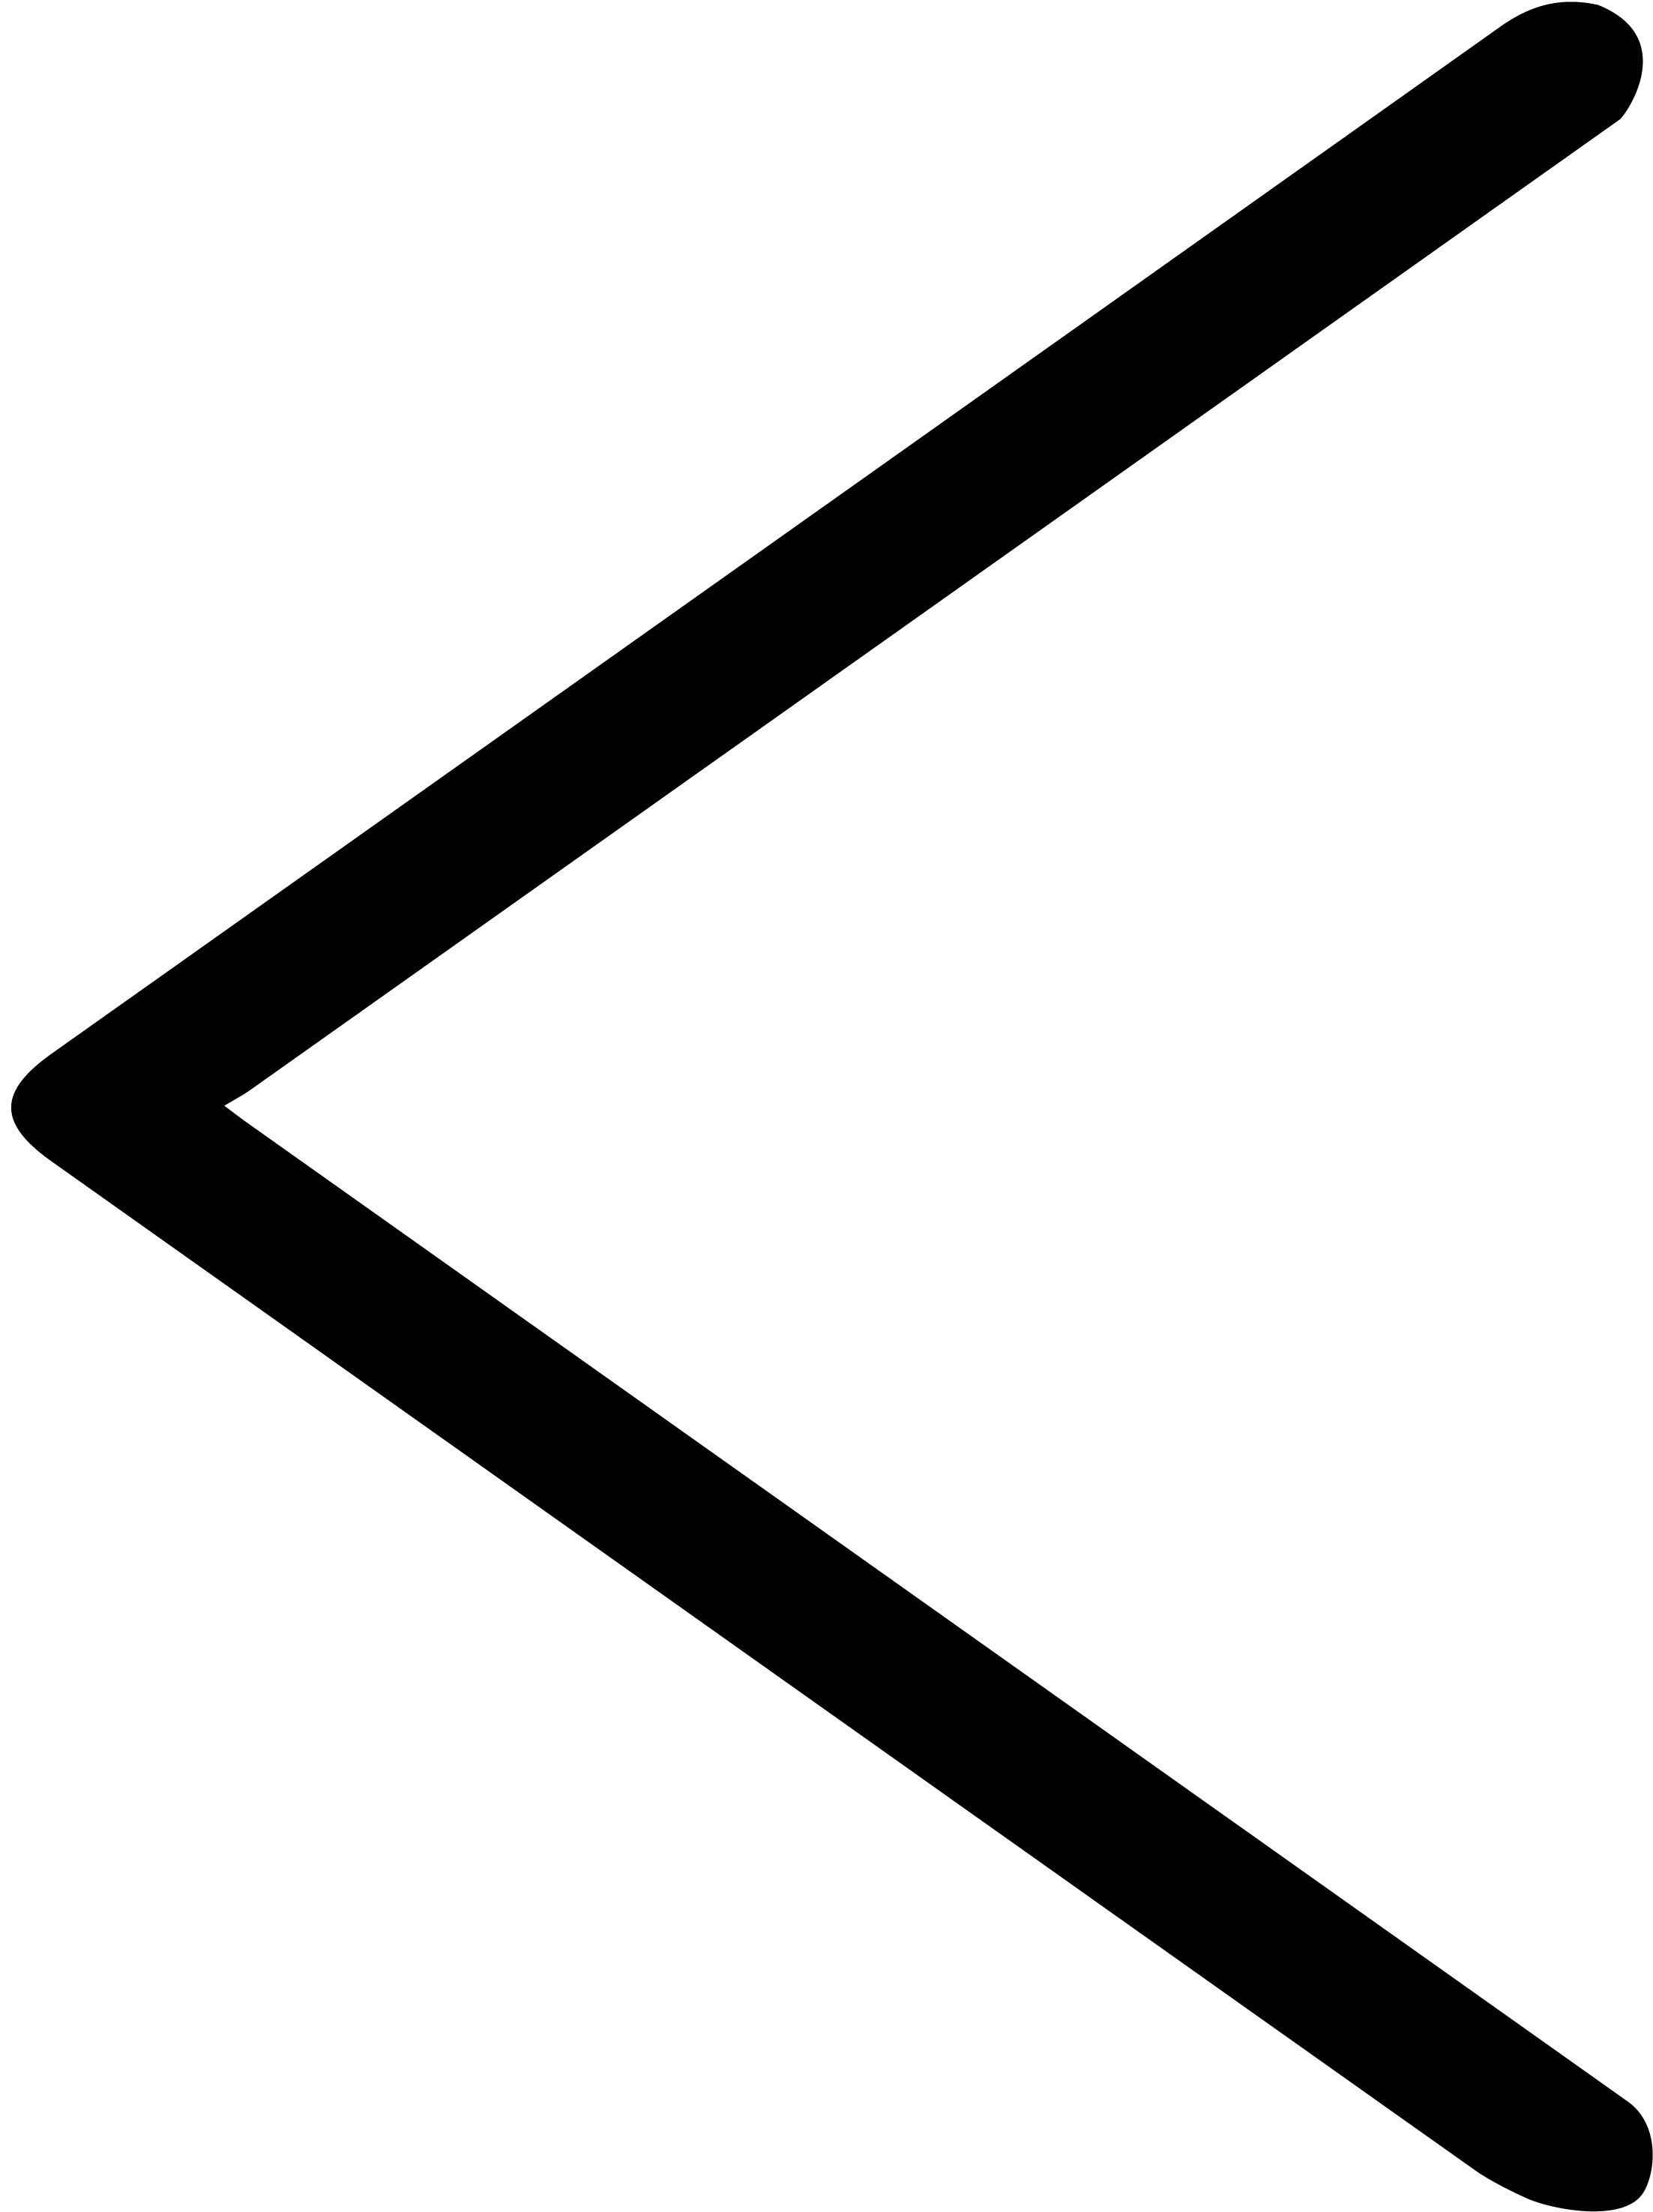 Arrow Left